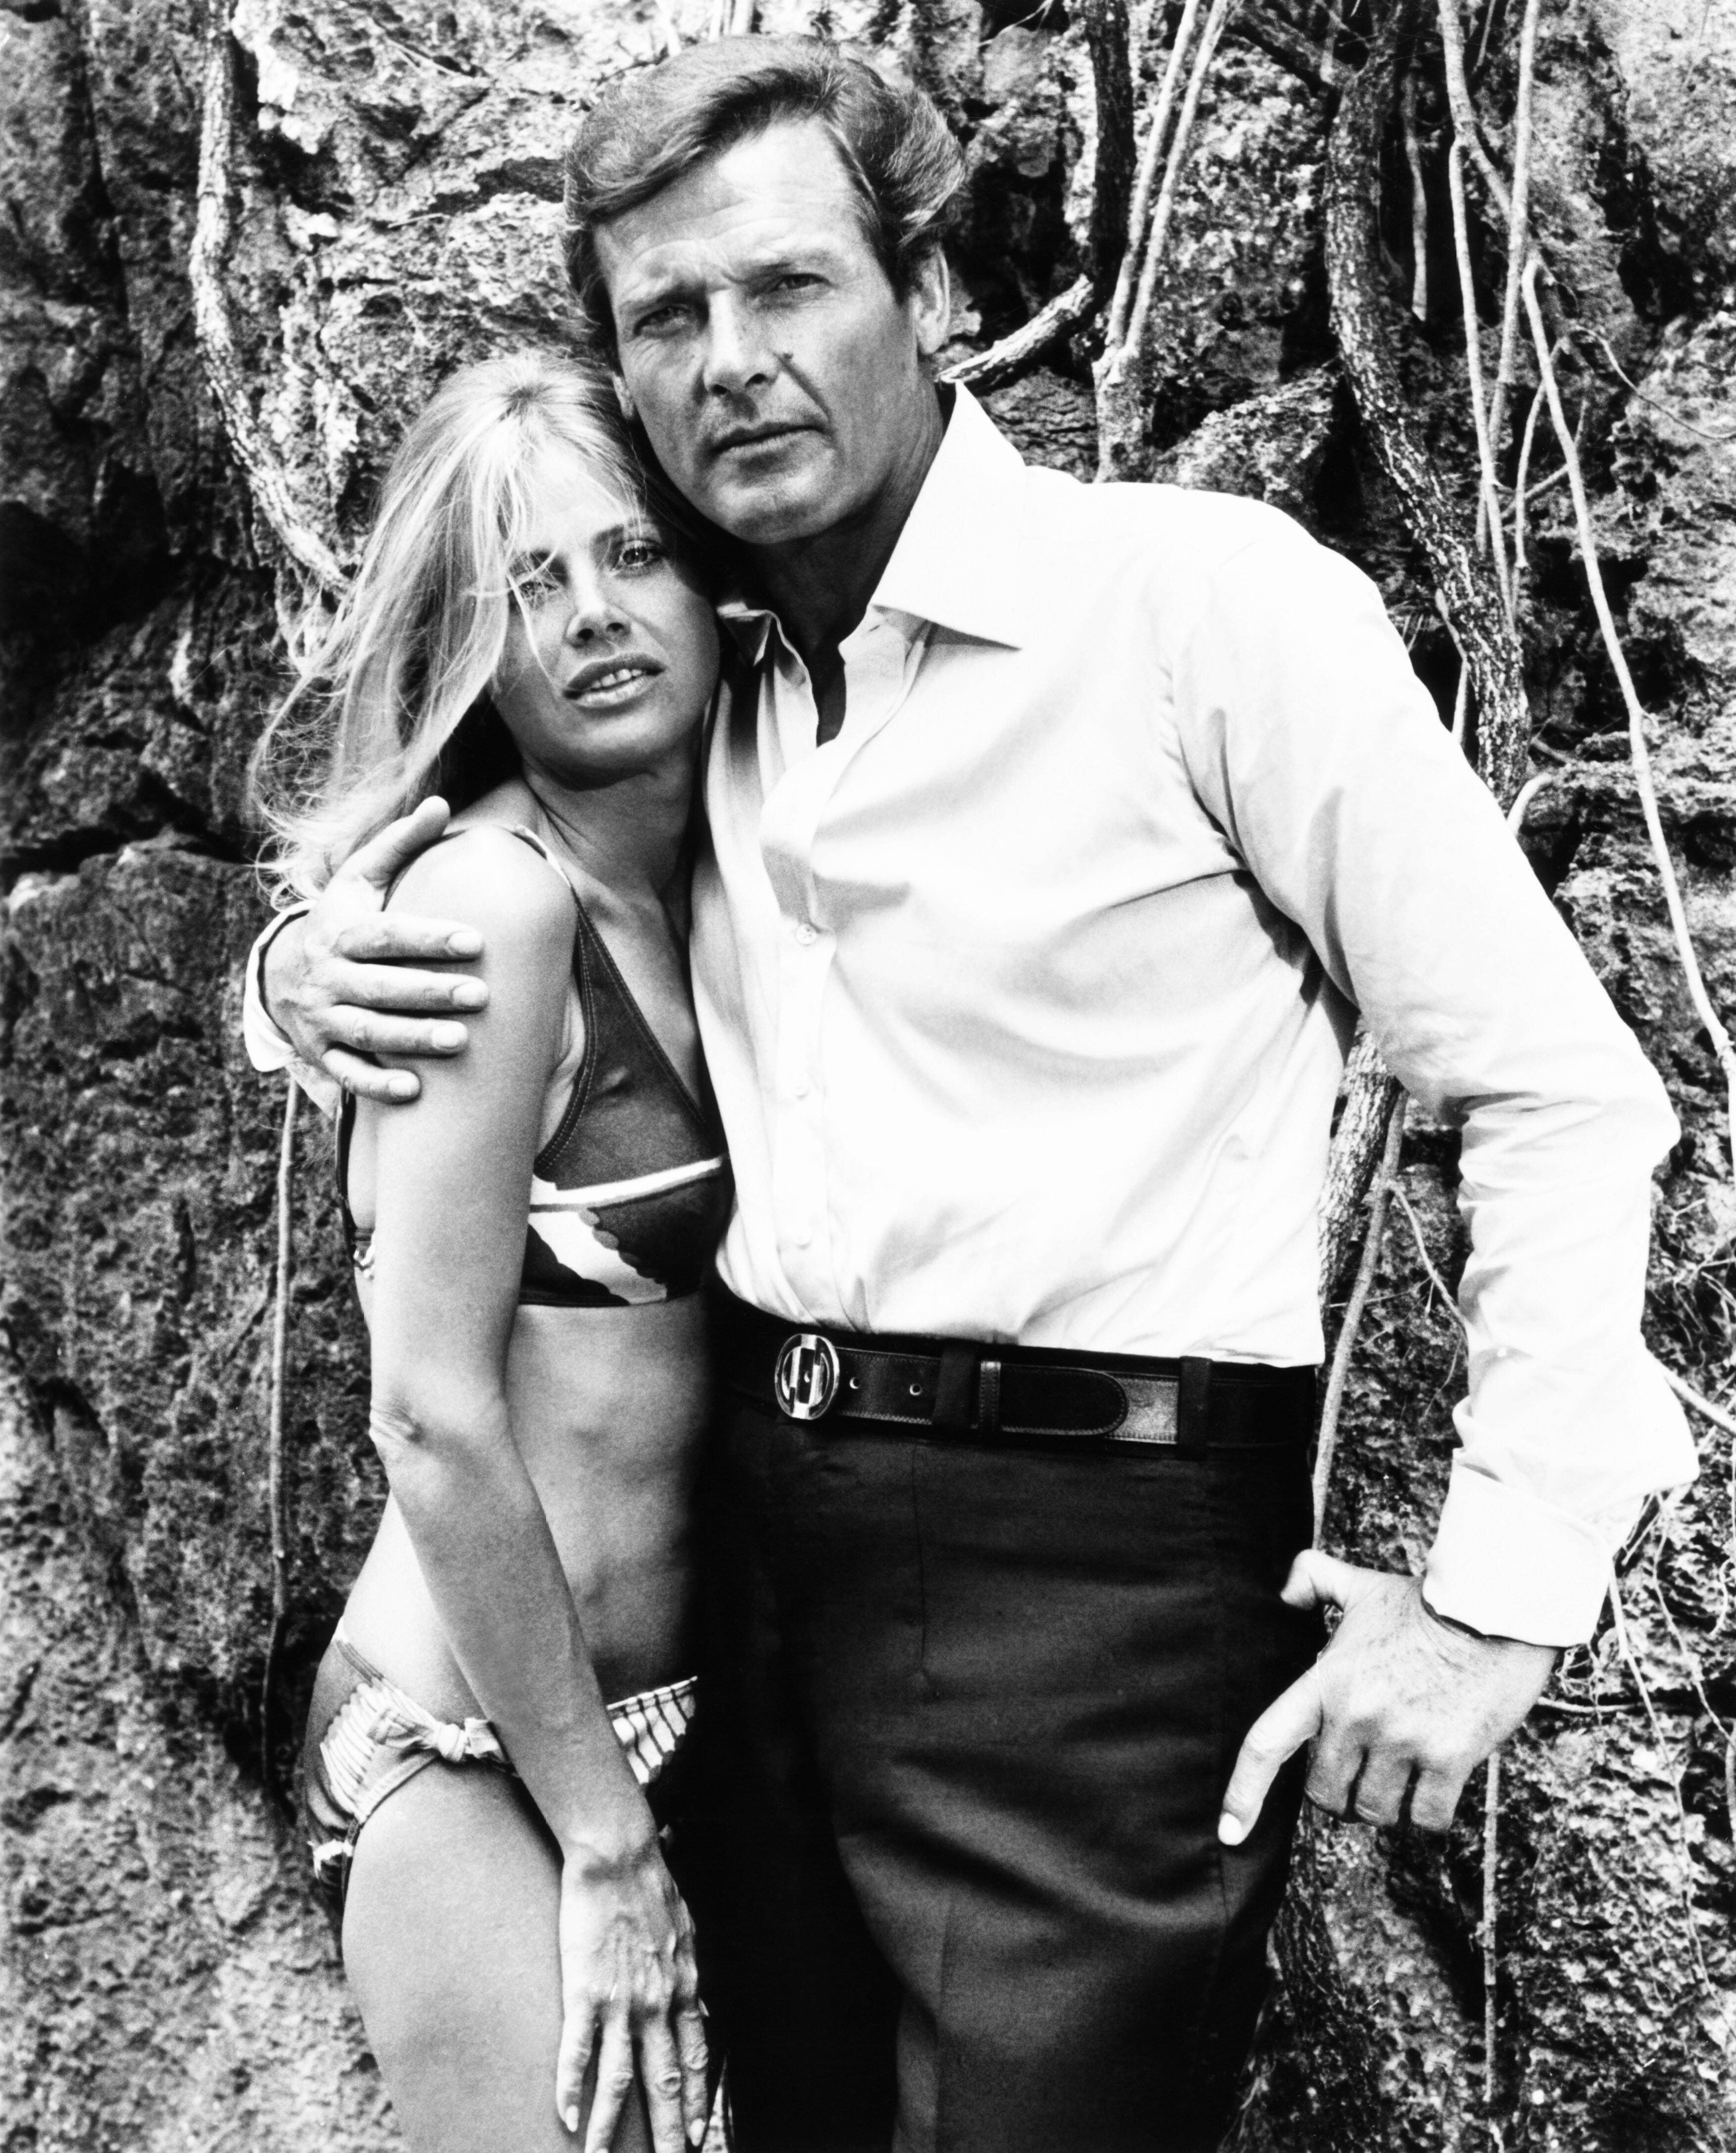 Britt Ekland And Roger Moore In 'The Man With The Golden Gun'